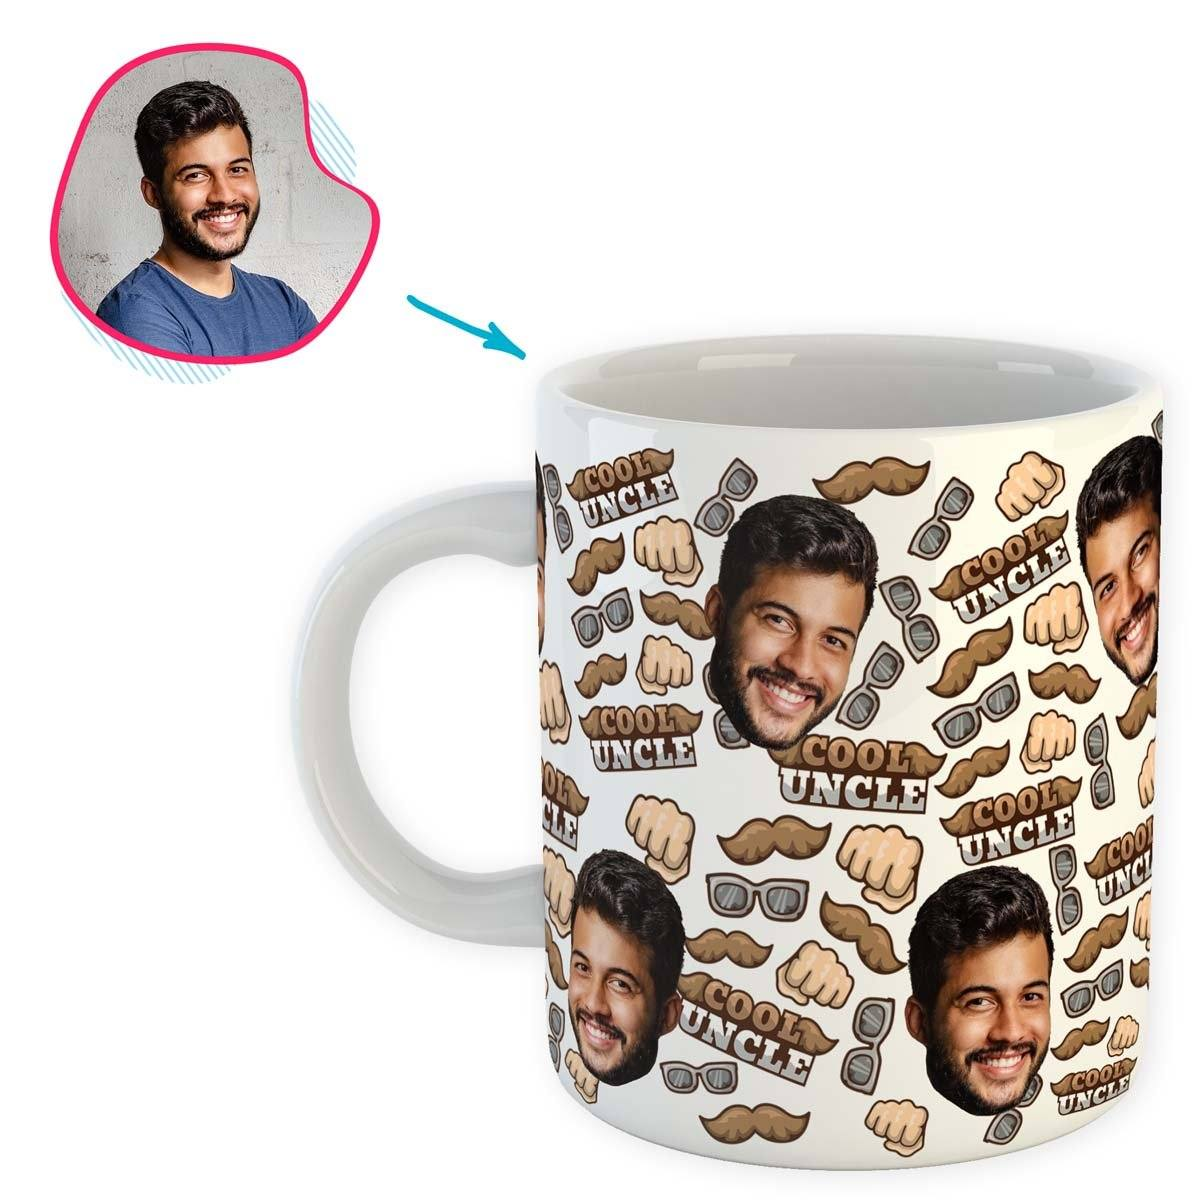 White Uncle personalized mug with photo of face printed on it